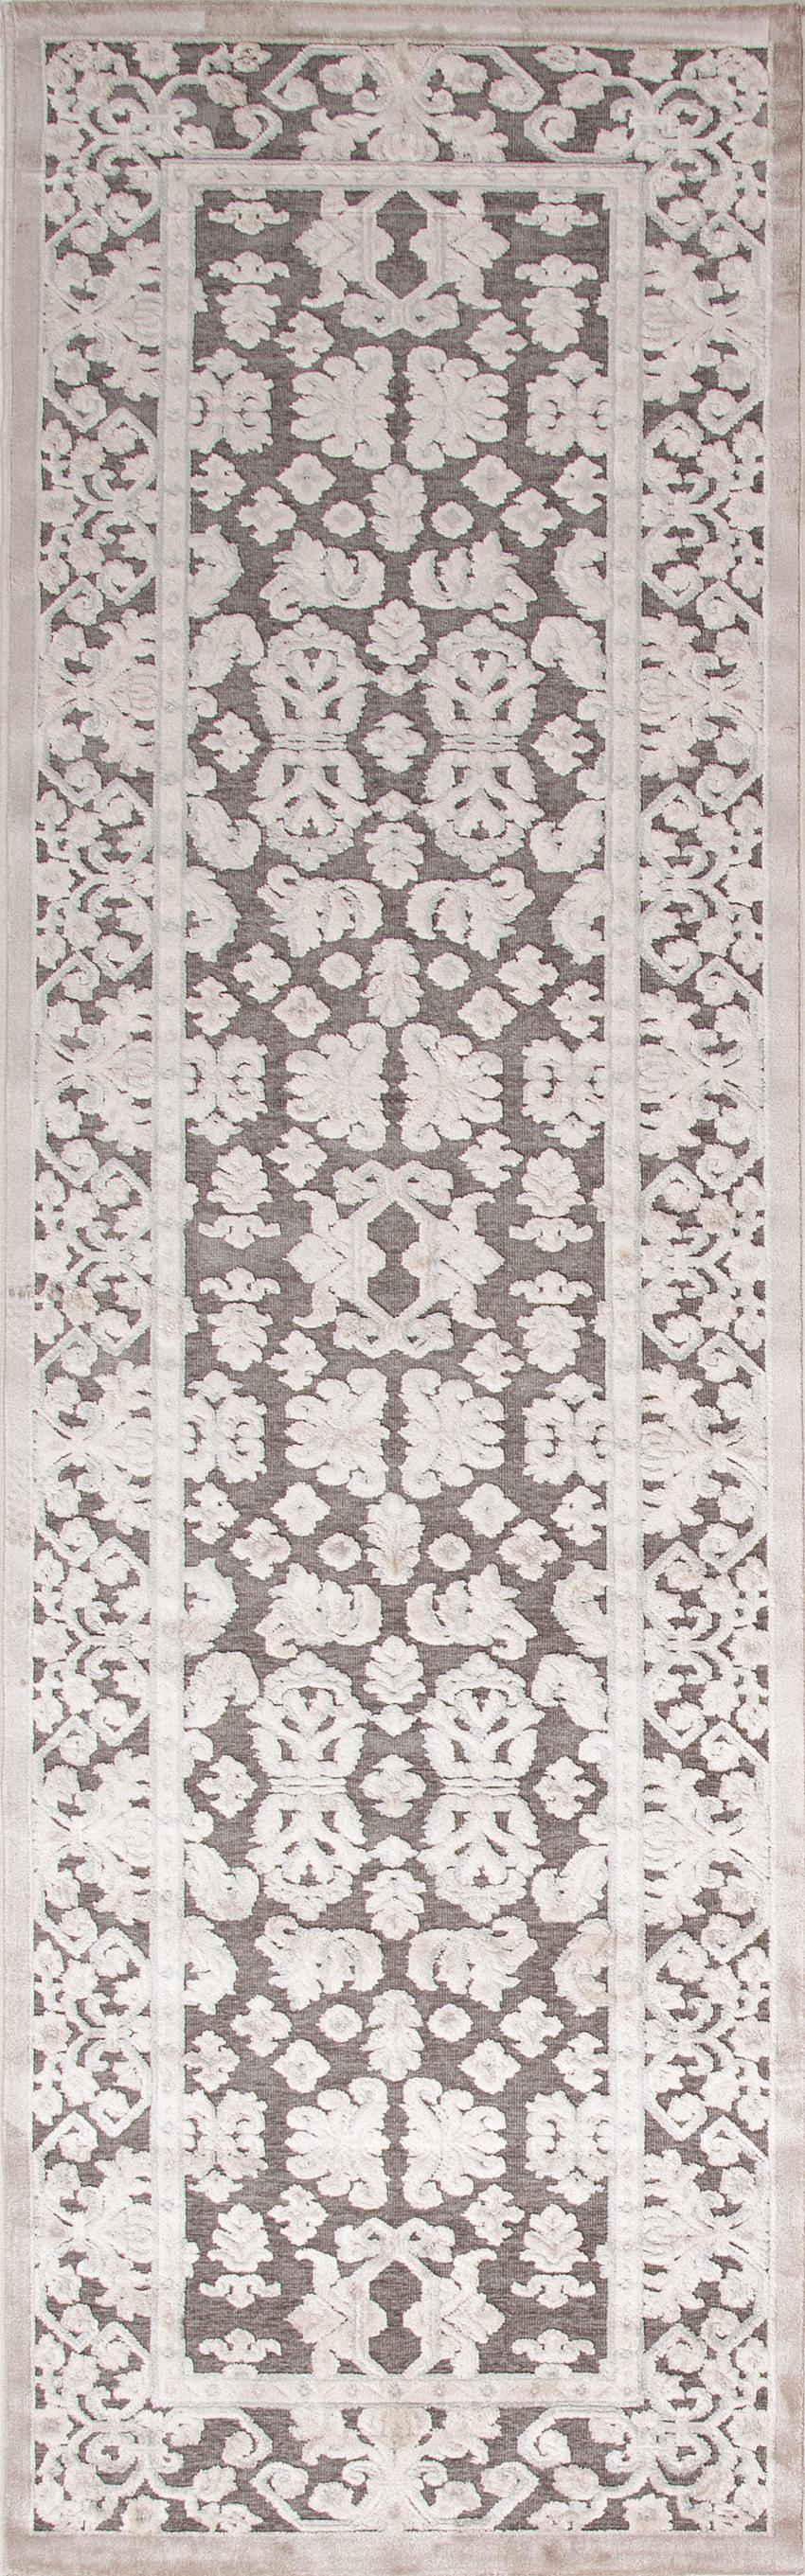 Jaipur Fables Regal Gray Ivory Fb08 Area Rug Free Shipping